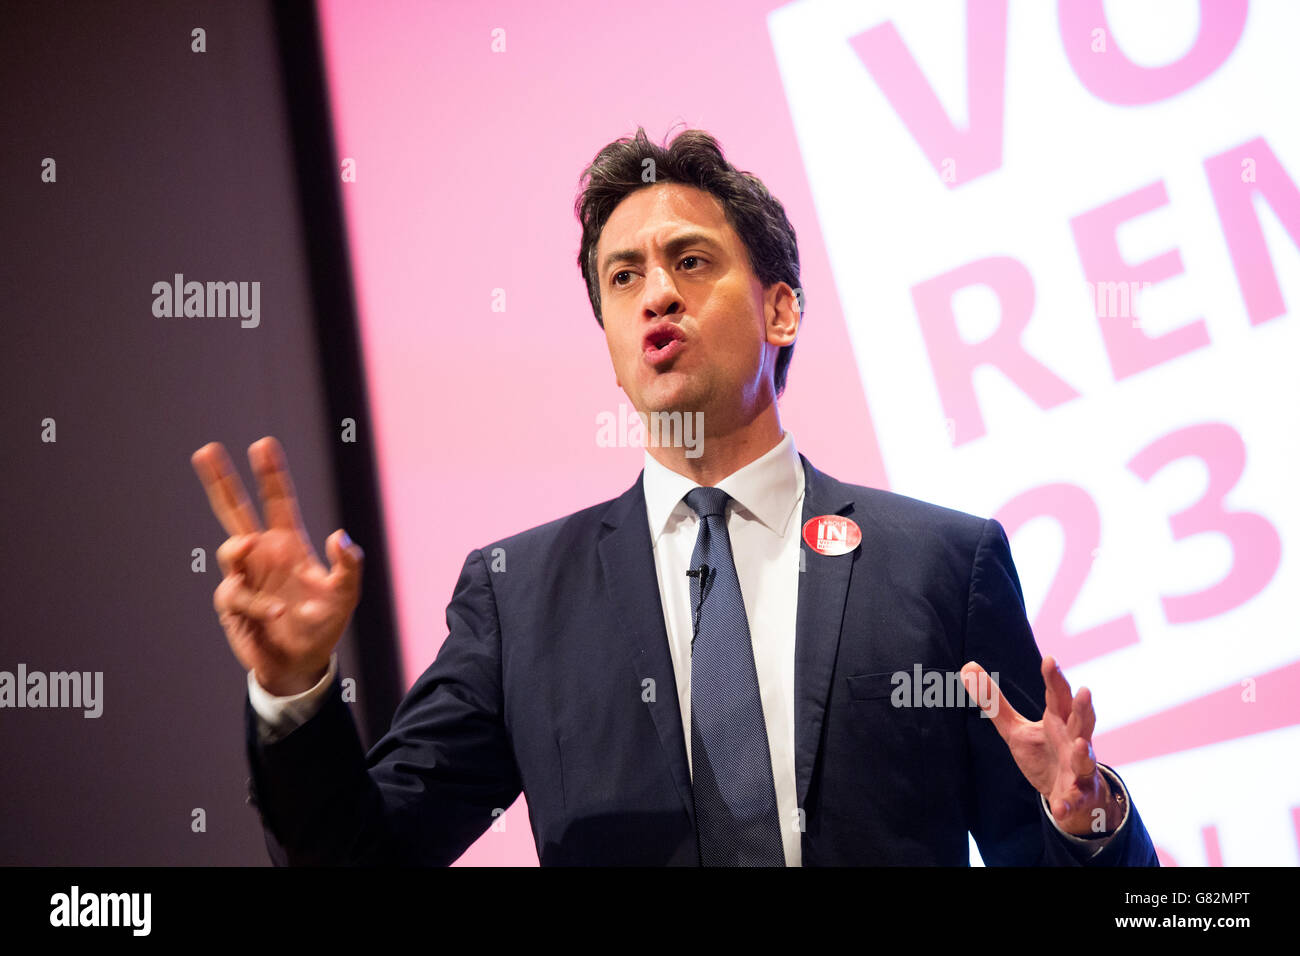 Former leader of the Labour party Ed (Edward) Miliband speaking at a meeting of the Remain party during the Referendum. - Stock Image